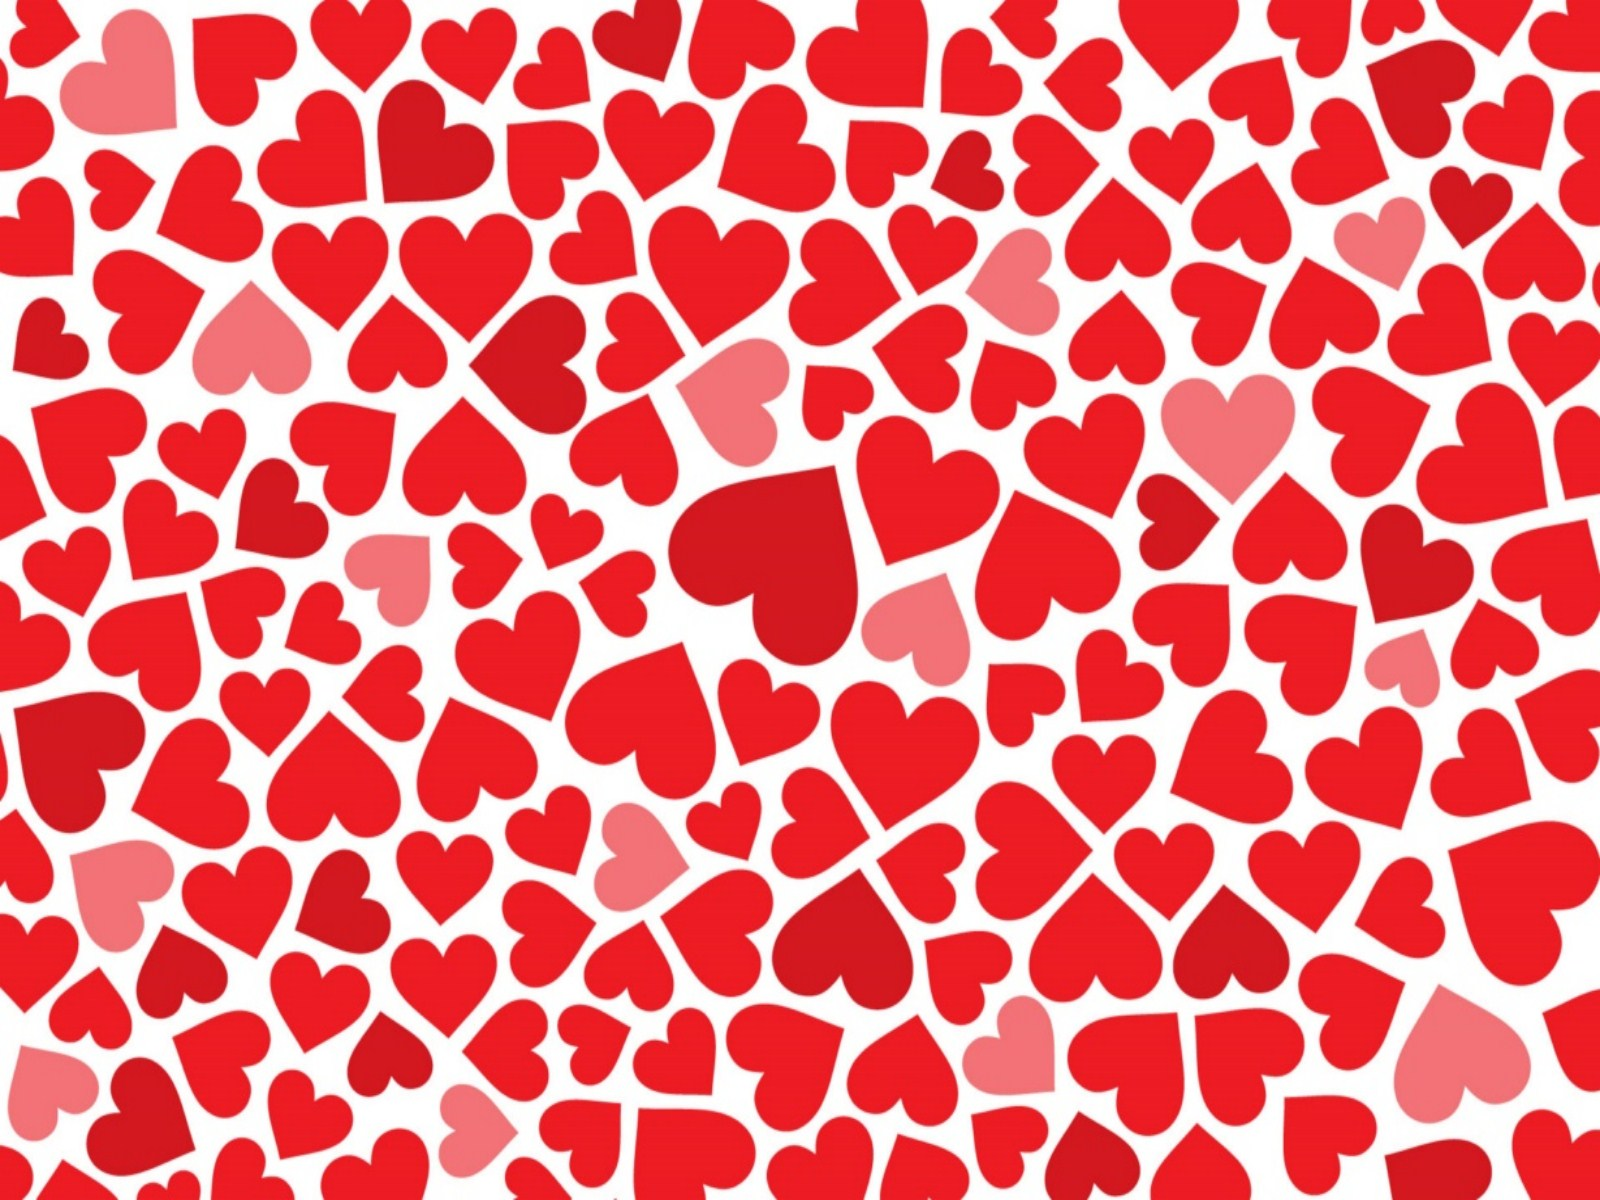 valentines day theme background image wallpaper